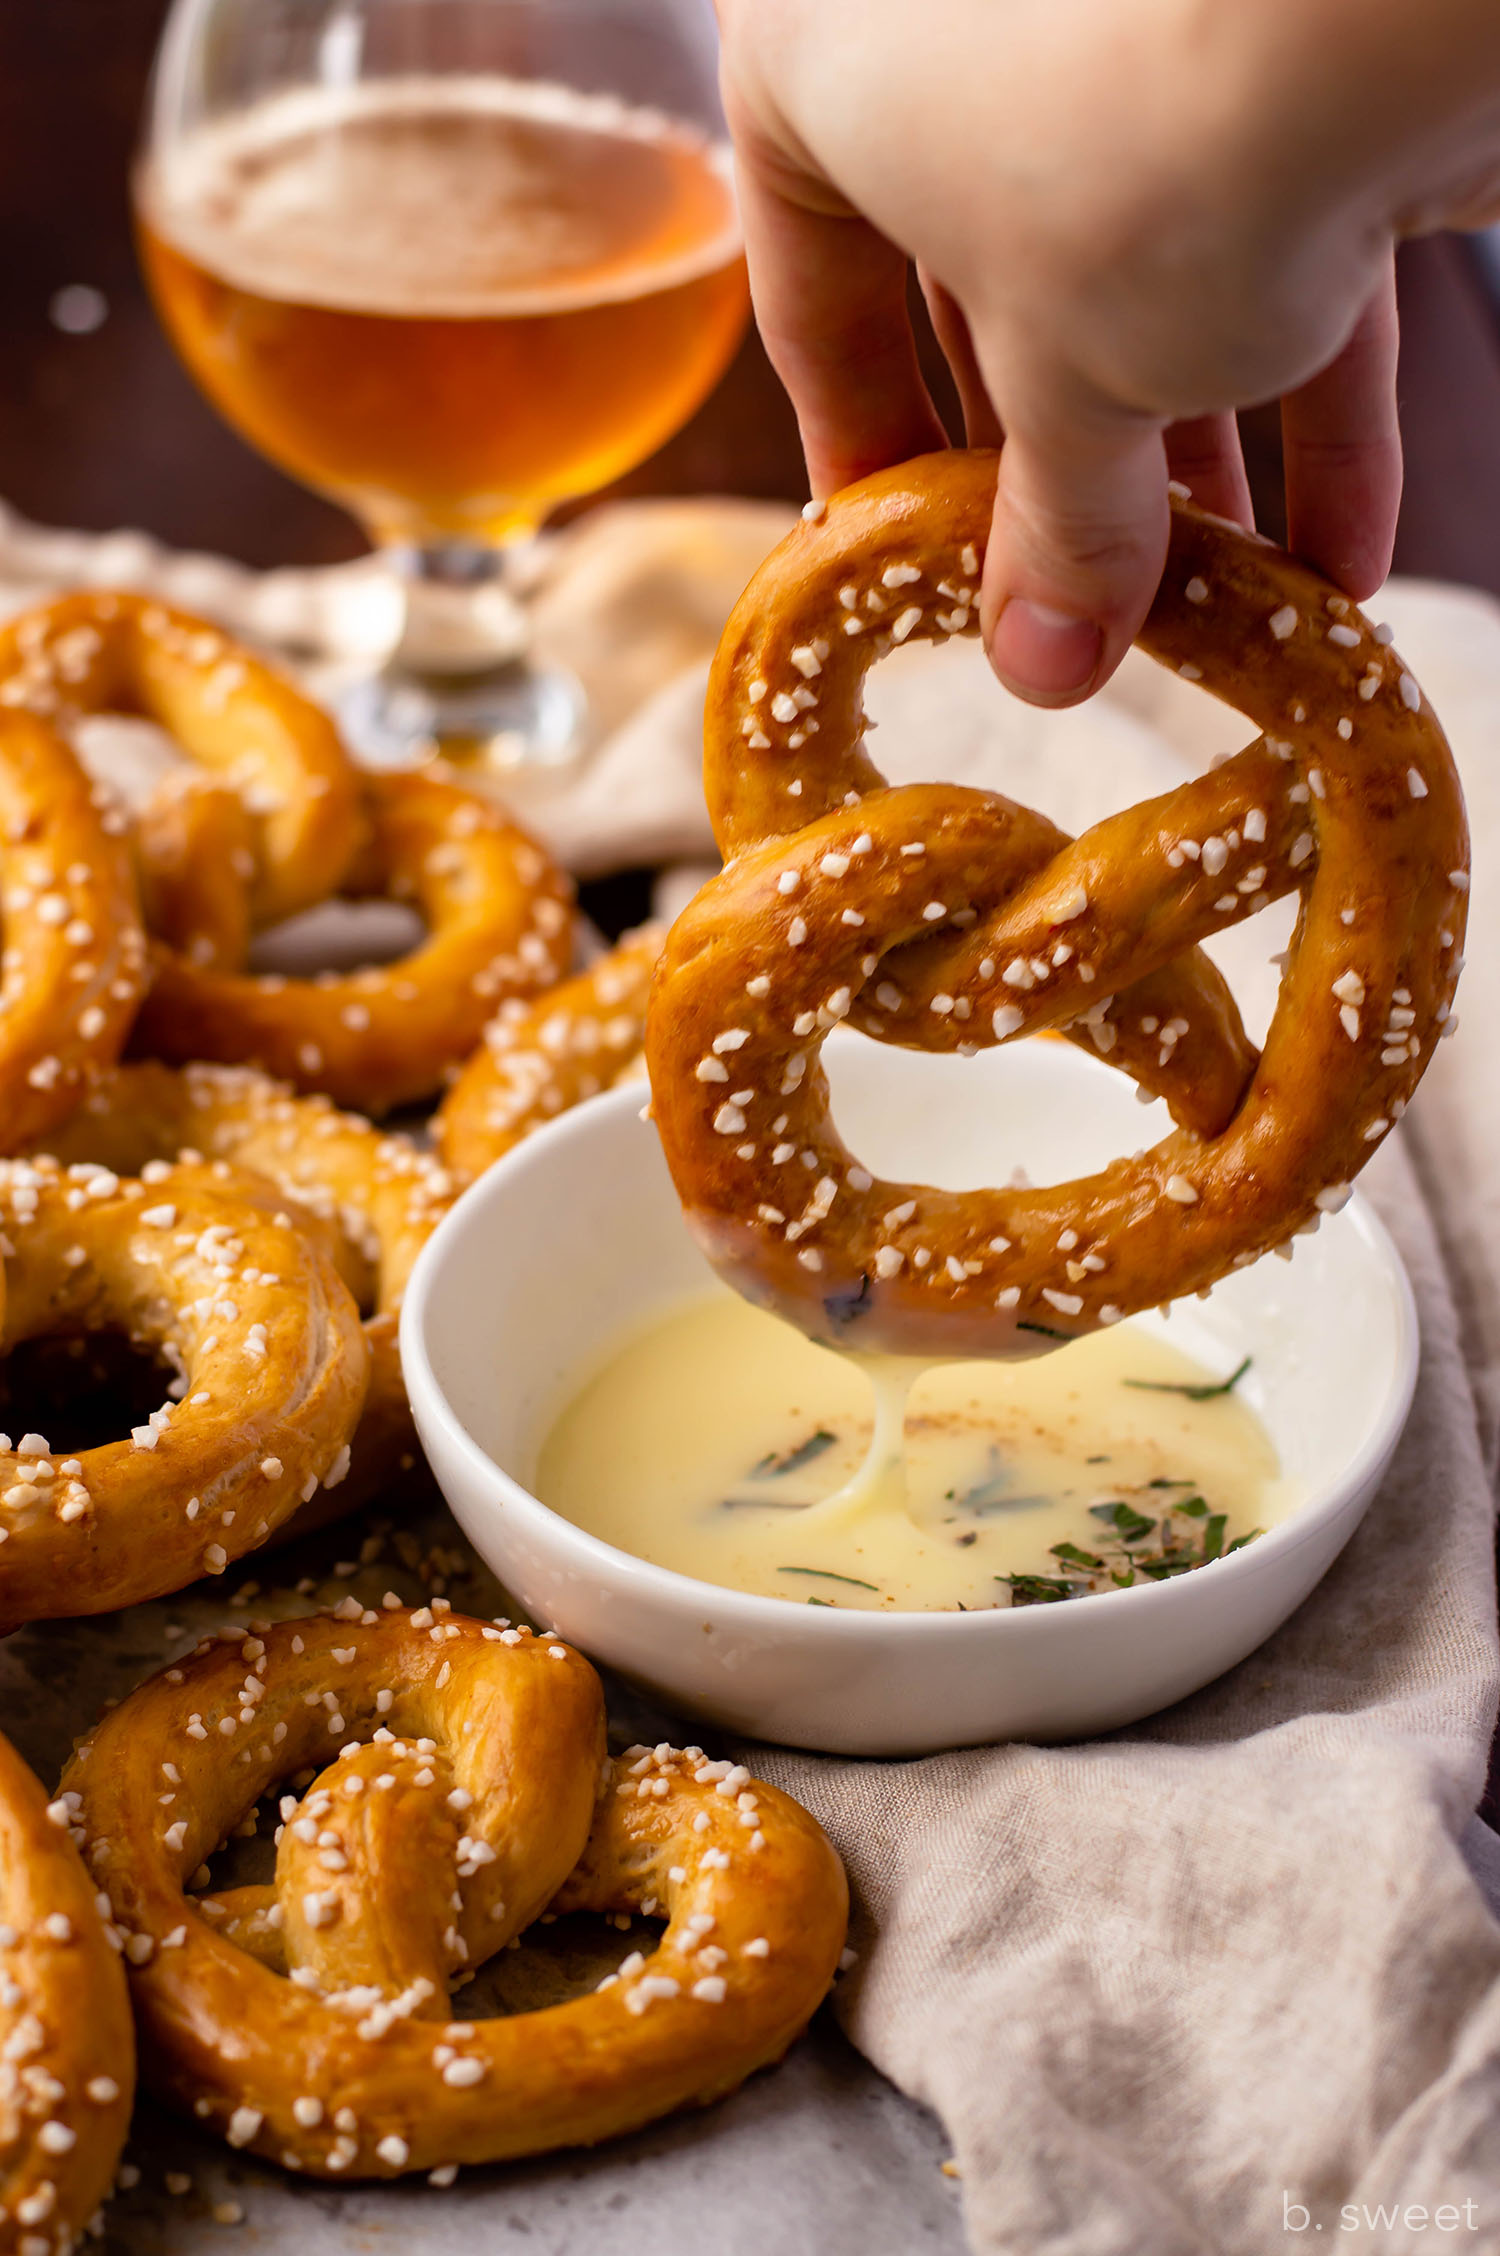 Beer, Pretzels and Cheese Dip April Fool's Day Dessert - b. sweet